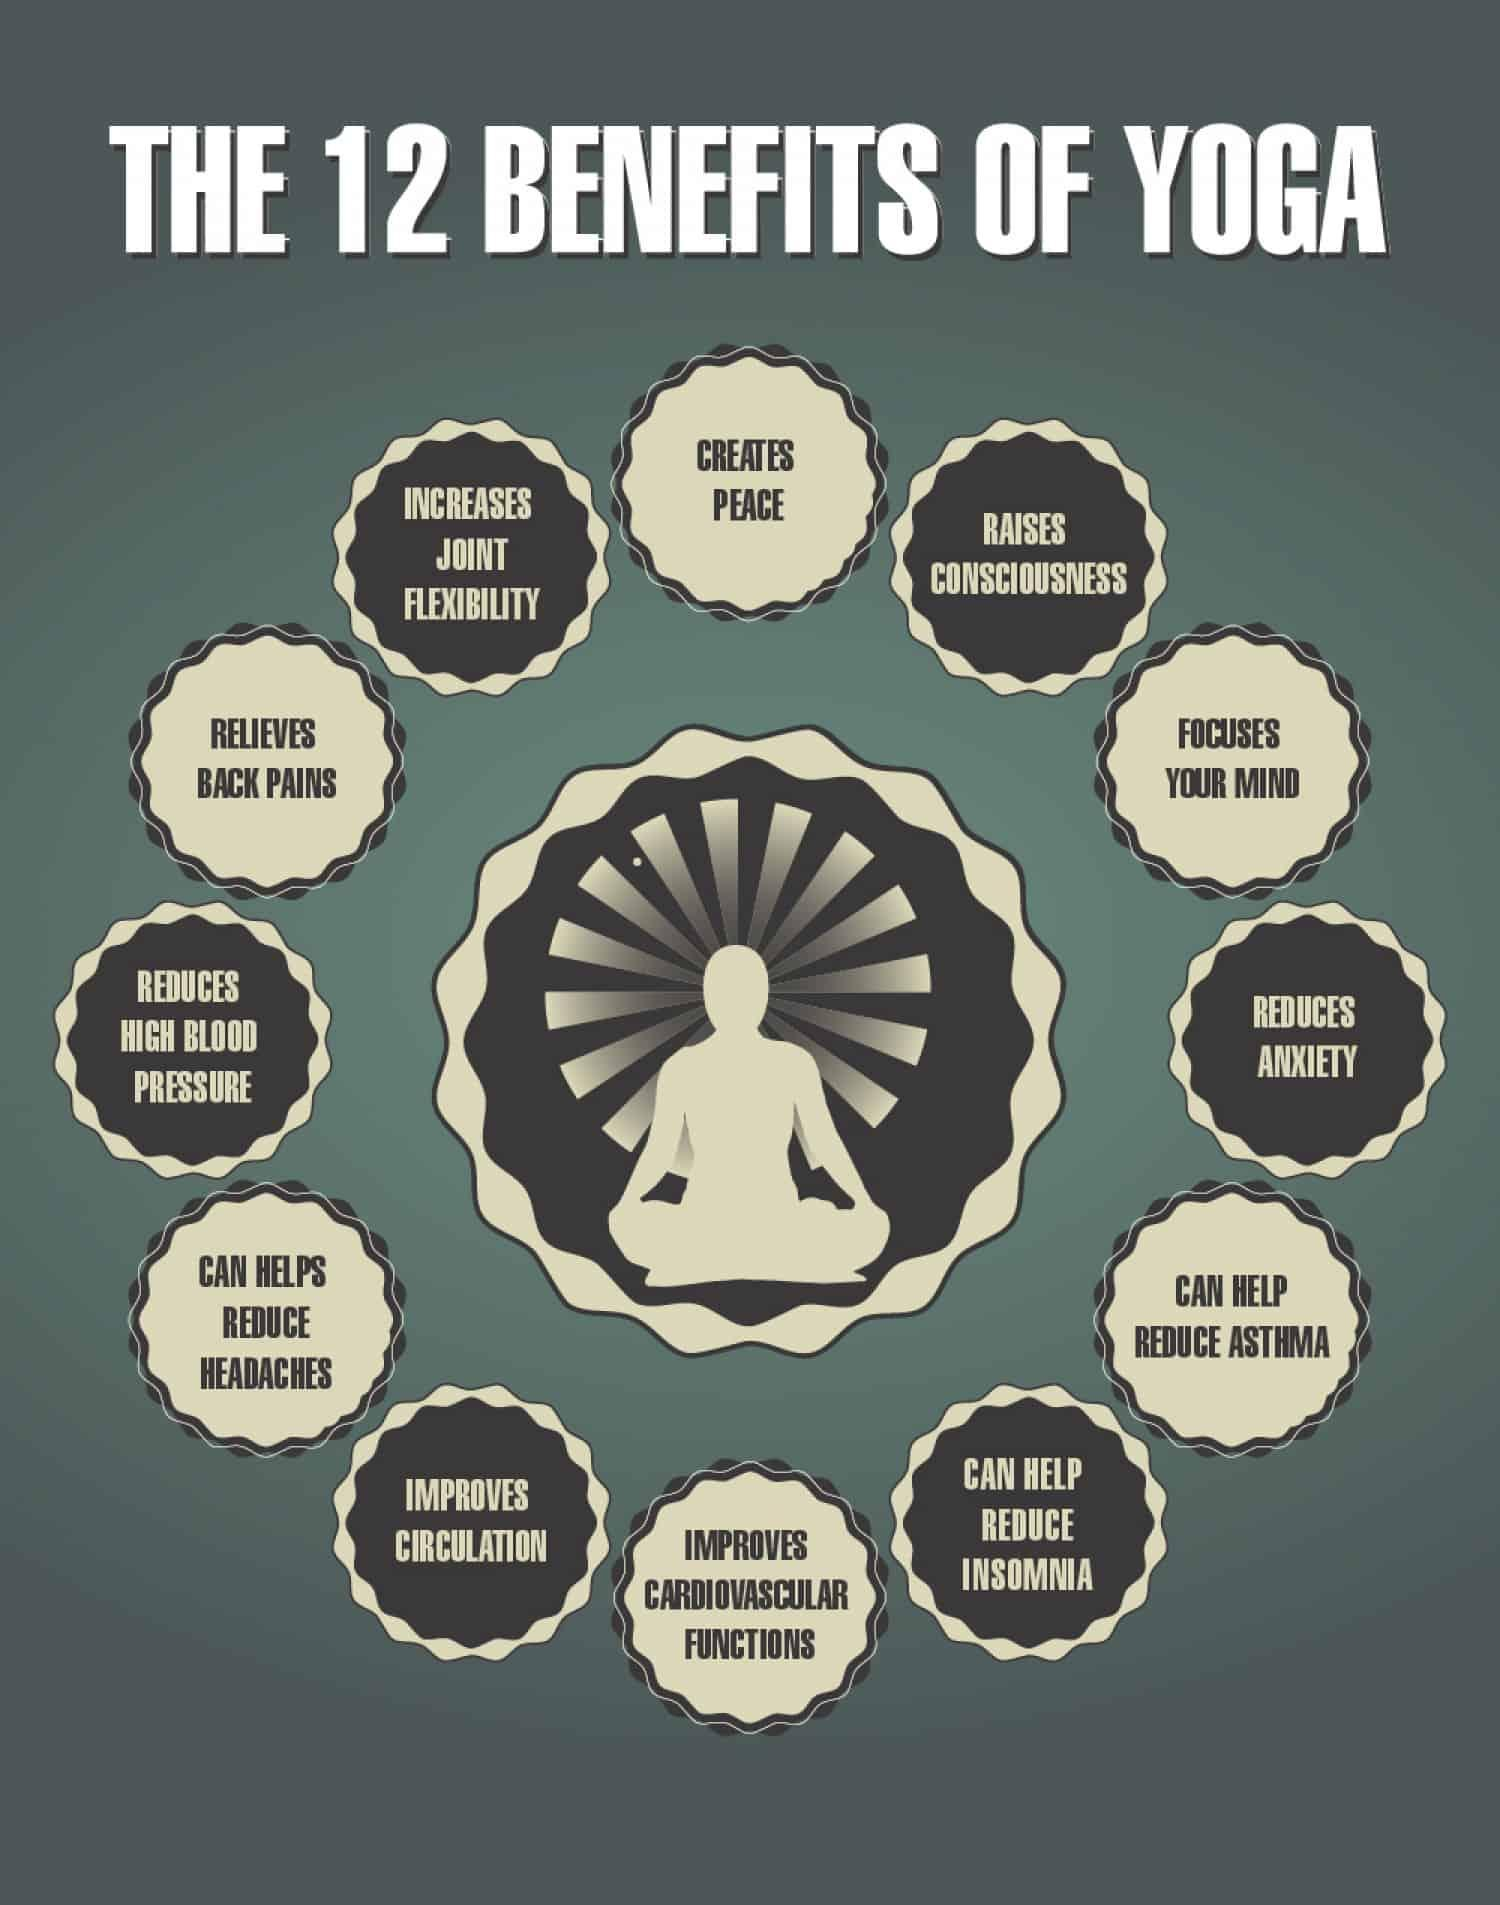 Les 12 benefices du yoga